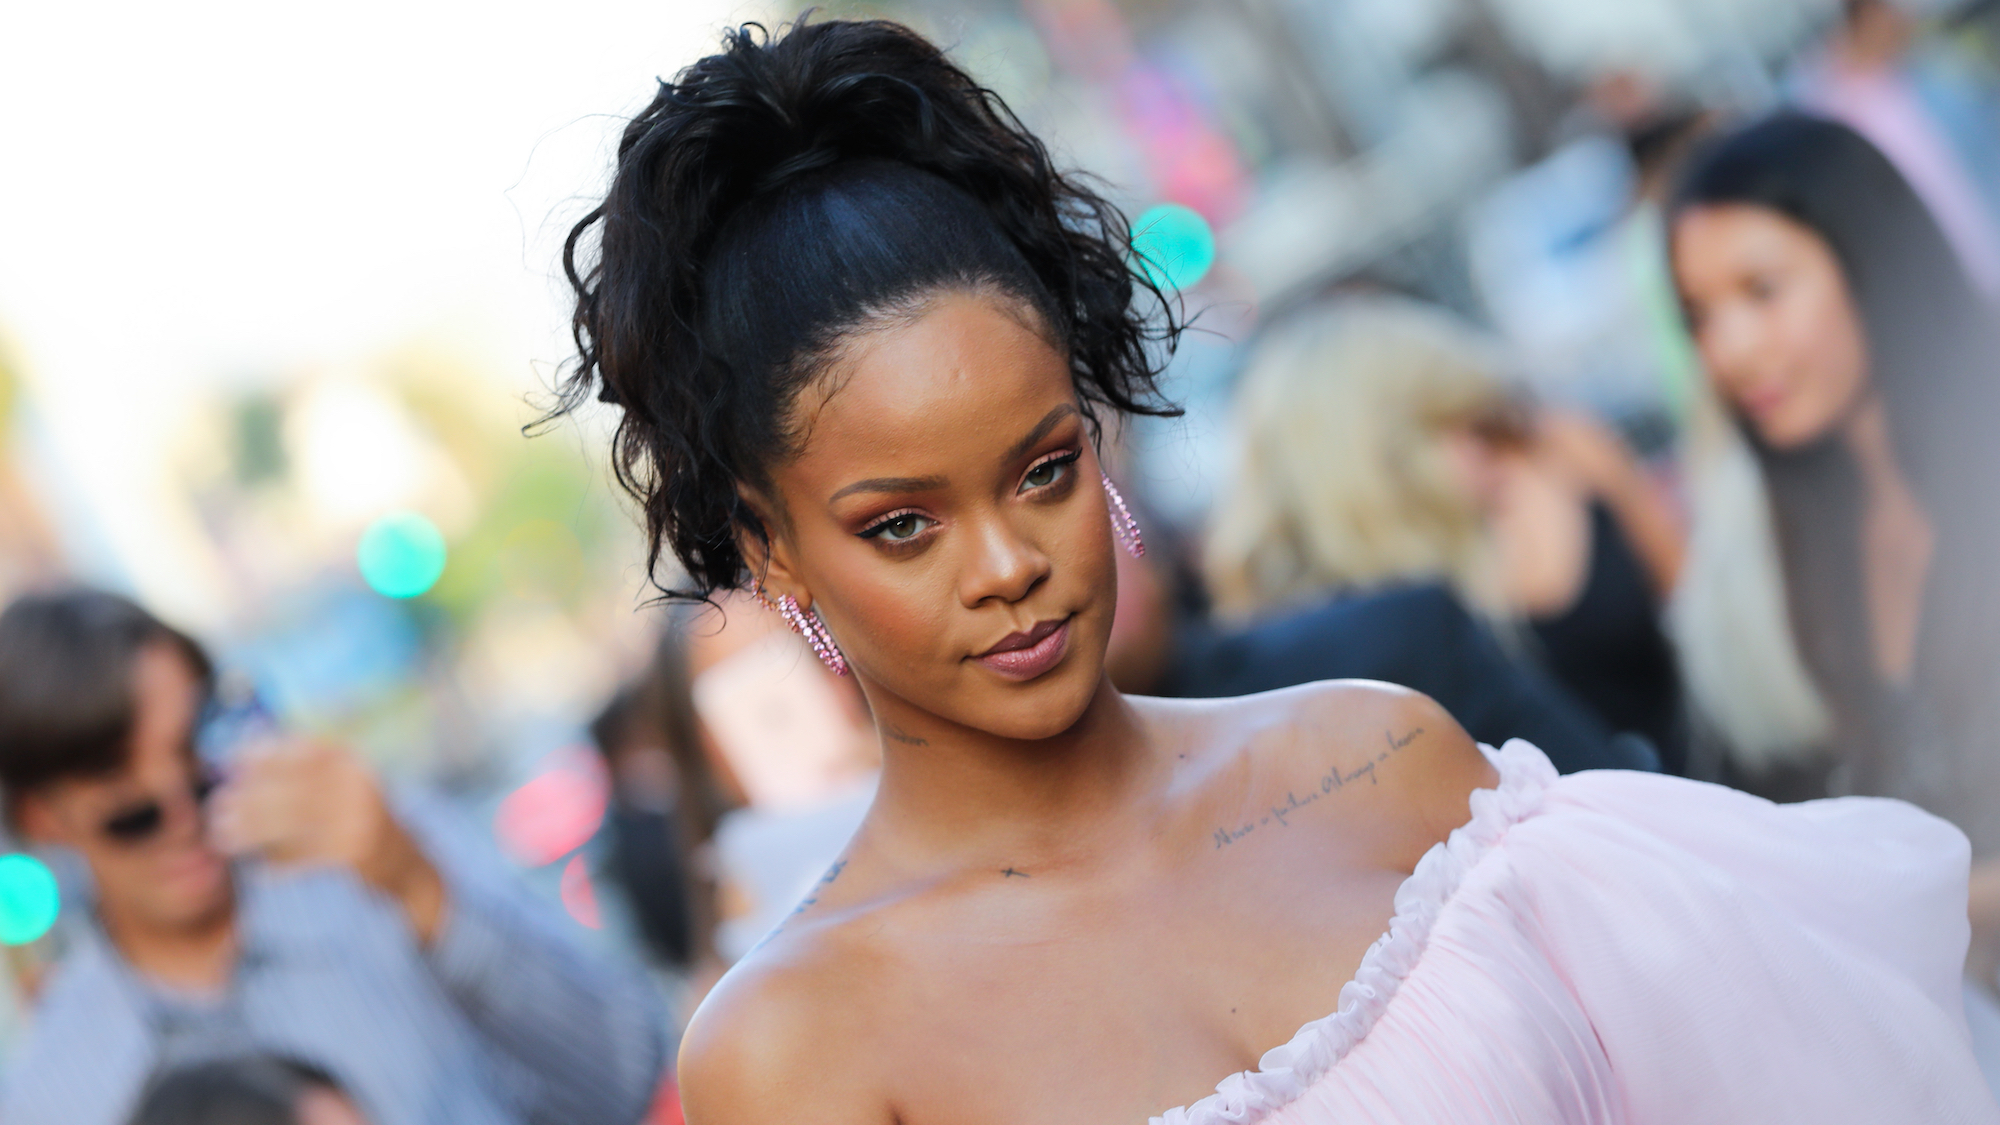 The Best Hairstyles For Oval Faces, According To Hair Experts For Short Haircuts For Black Women With Fine Hair (View 19 of 25)